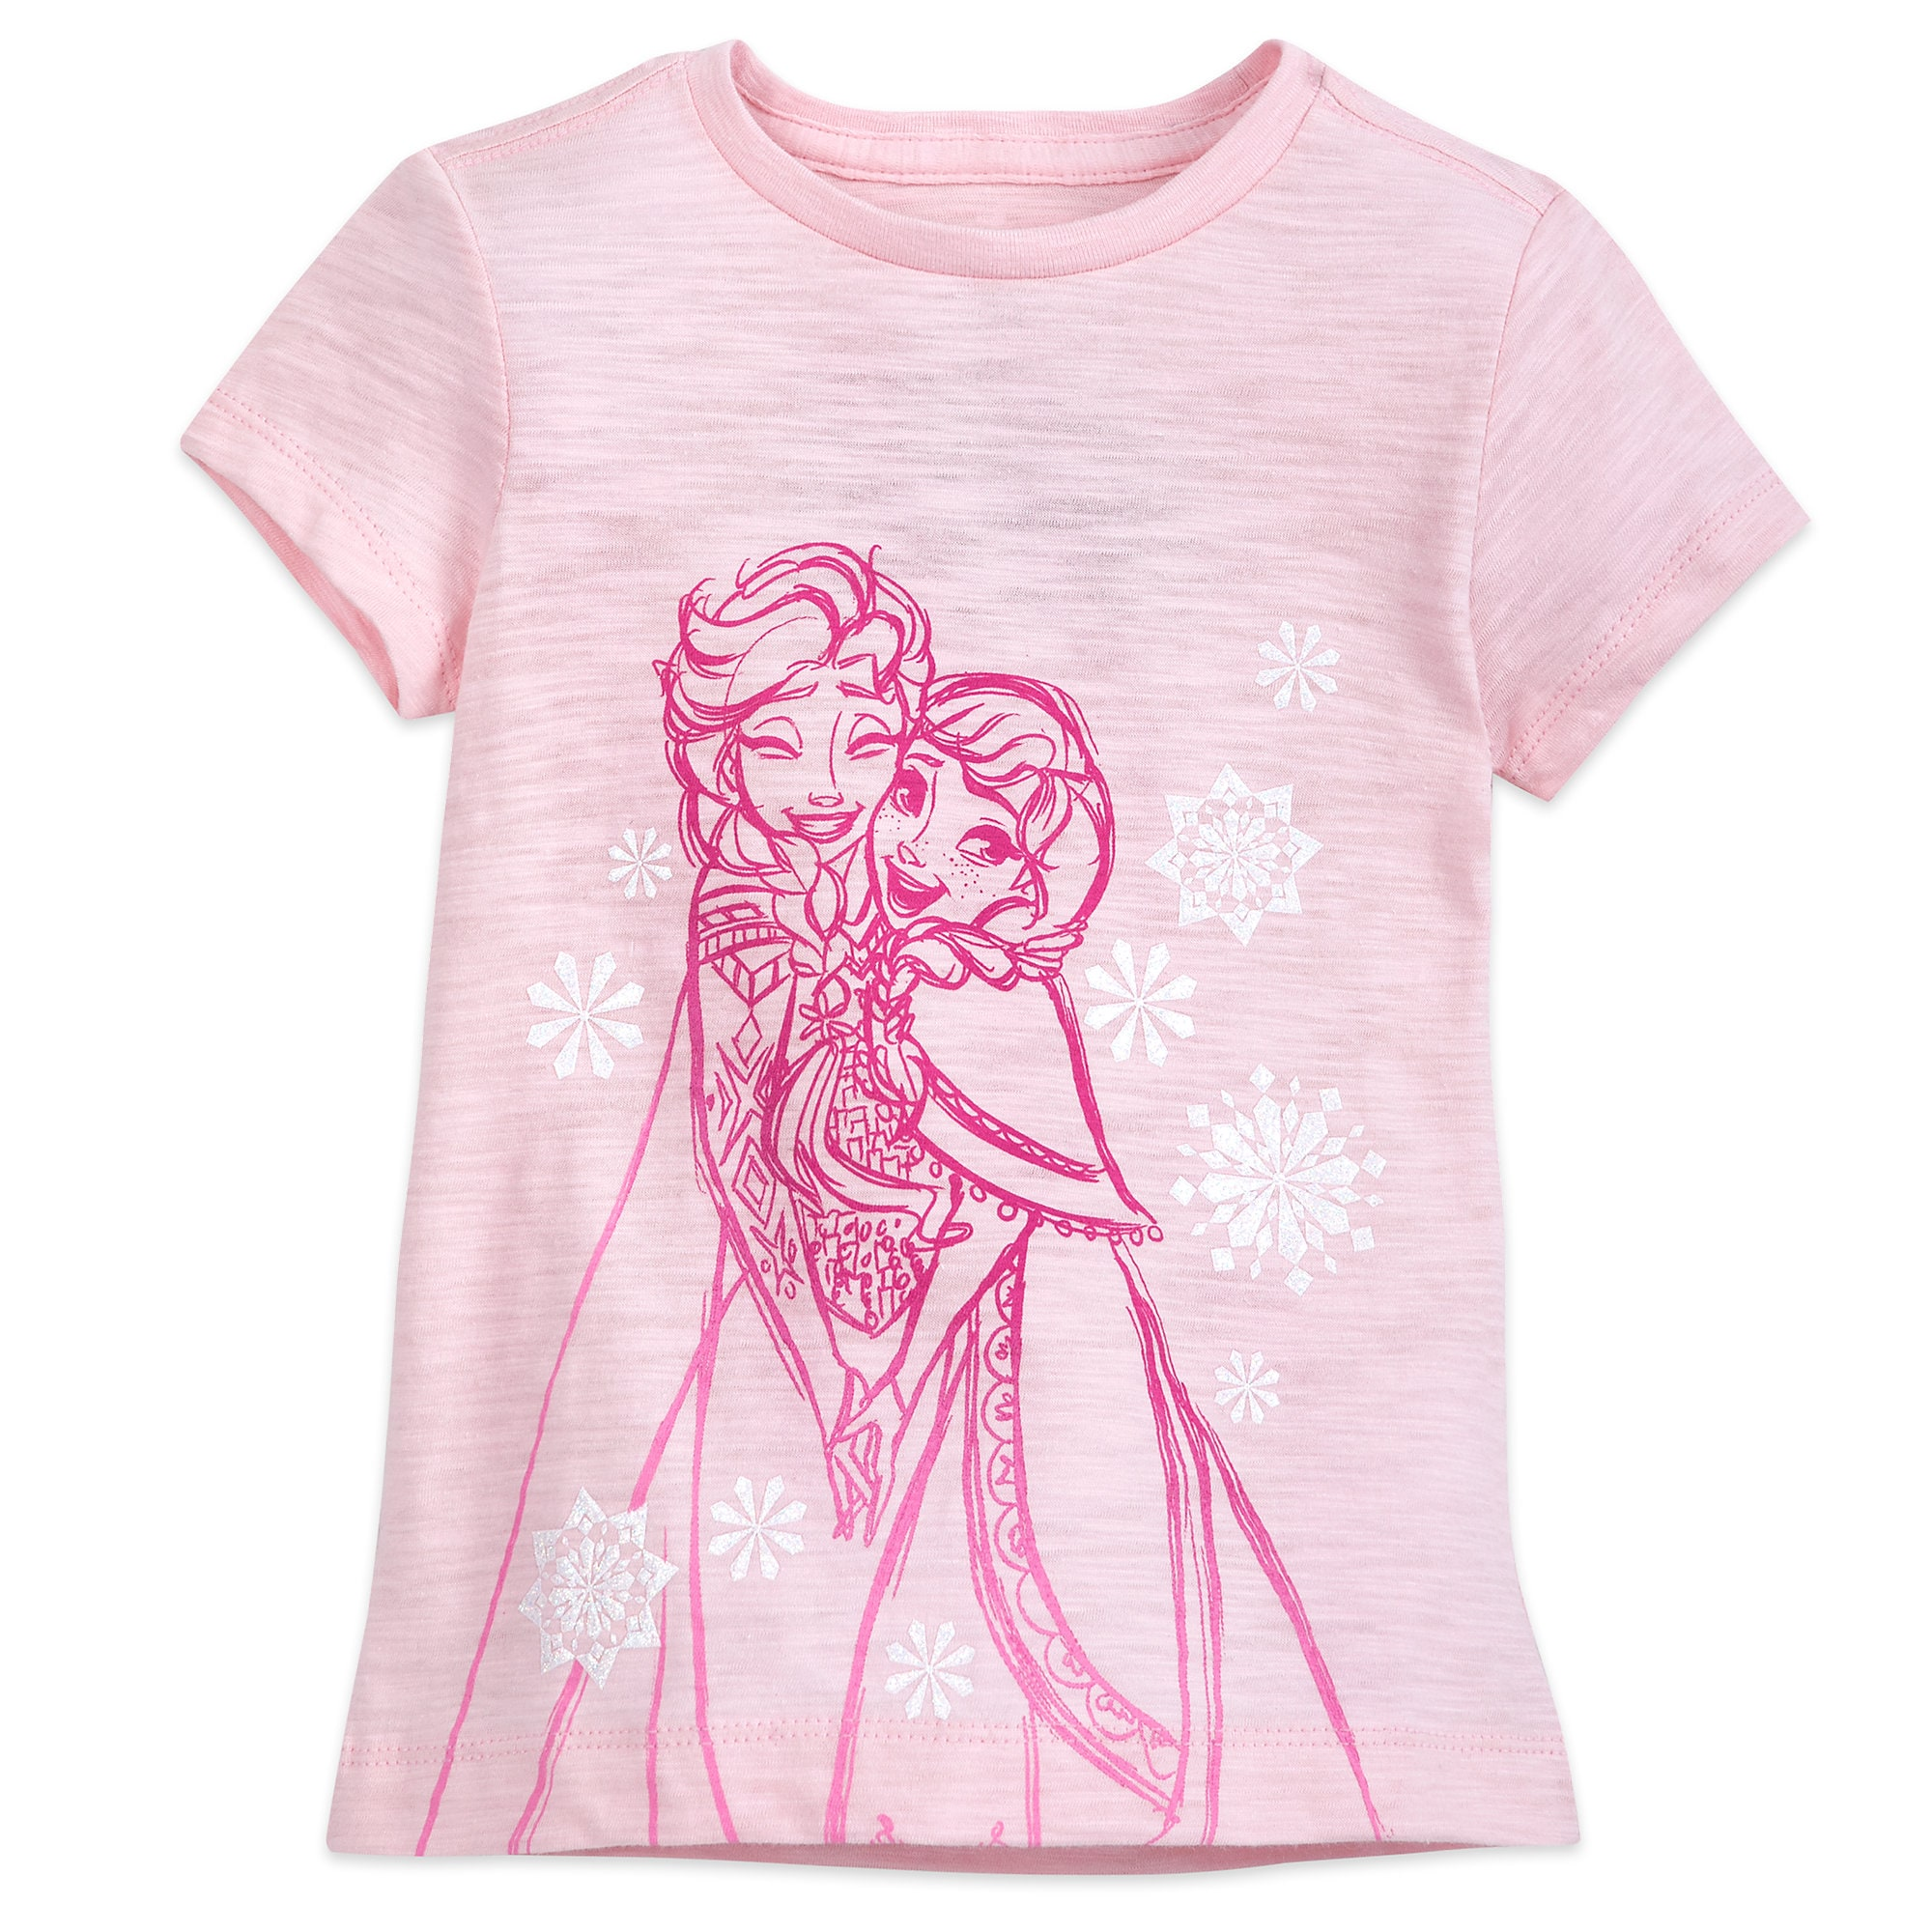 Discussion on this topic: Natalie Pack, elsa-tee/